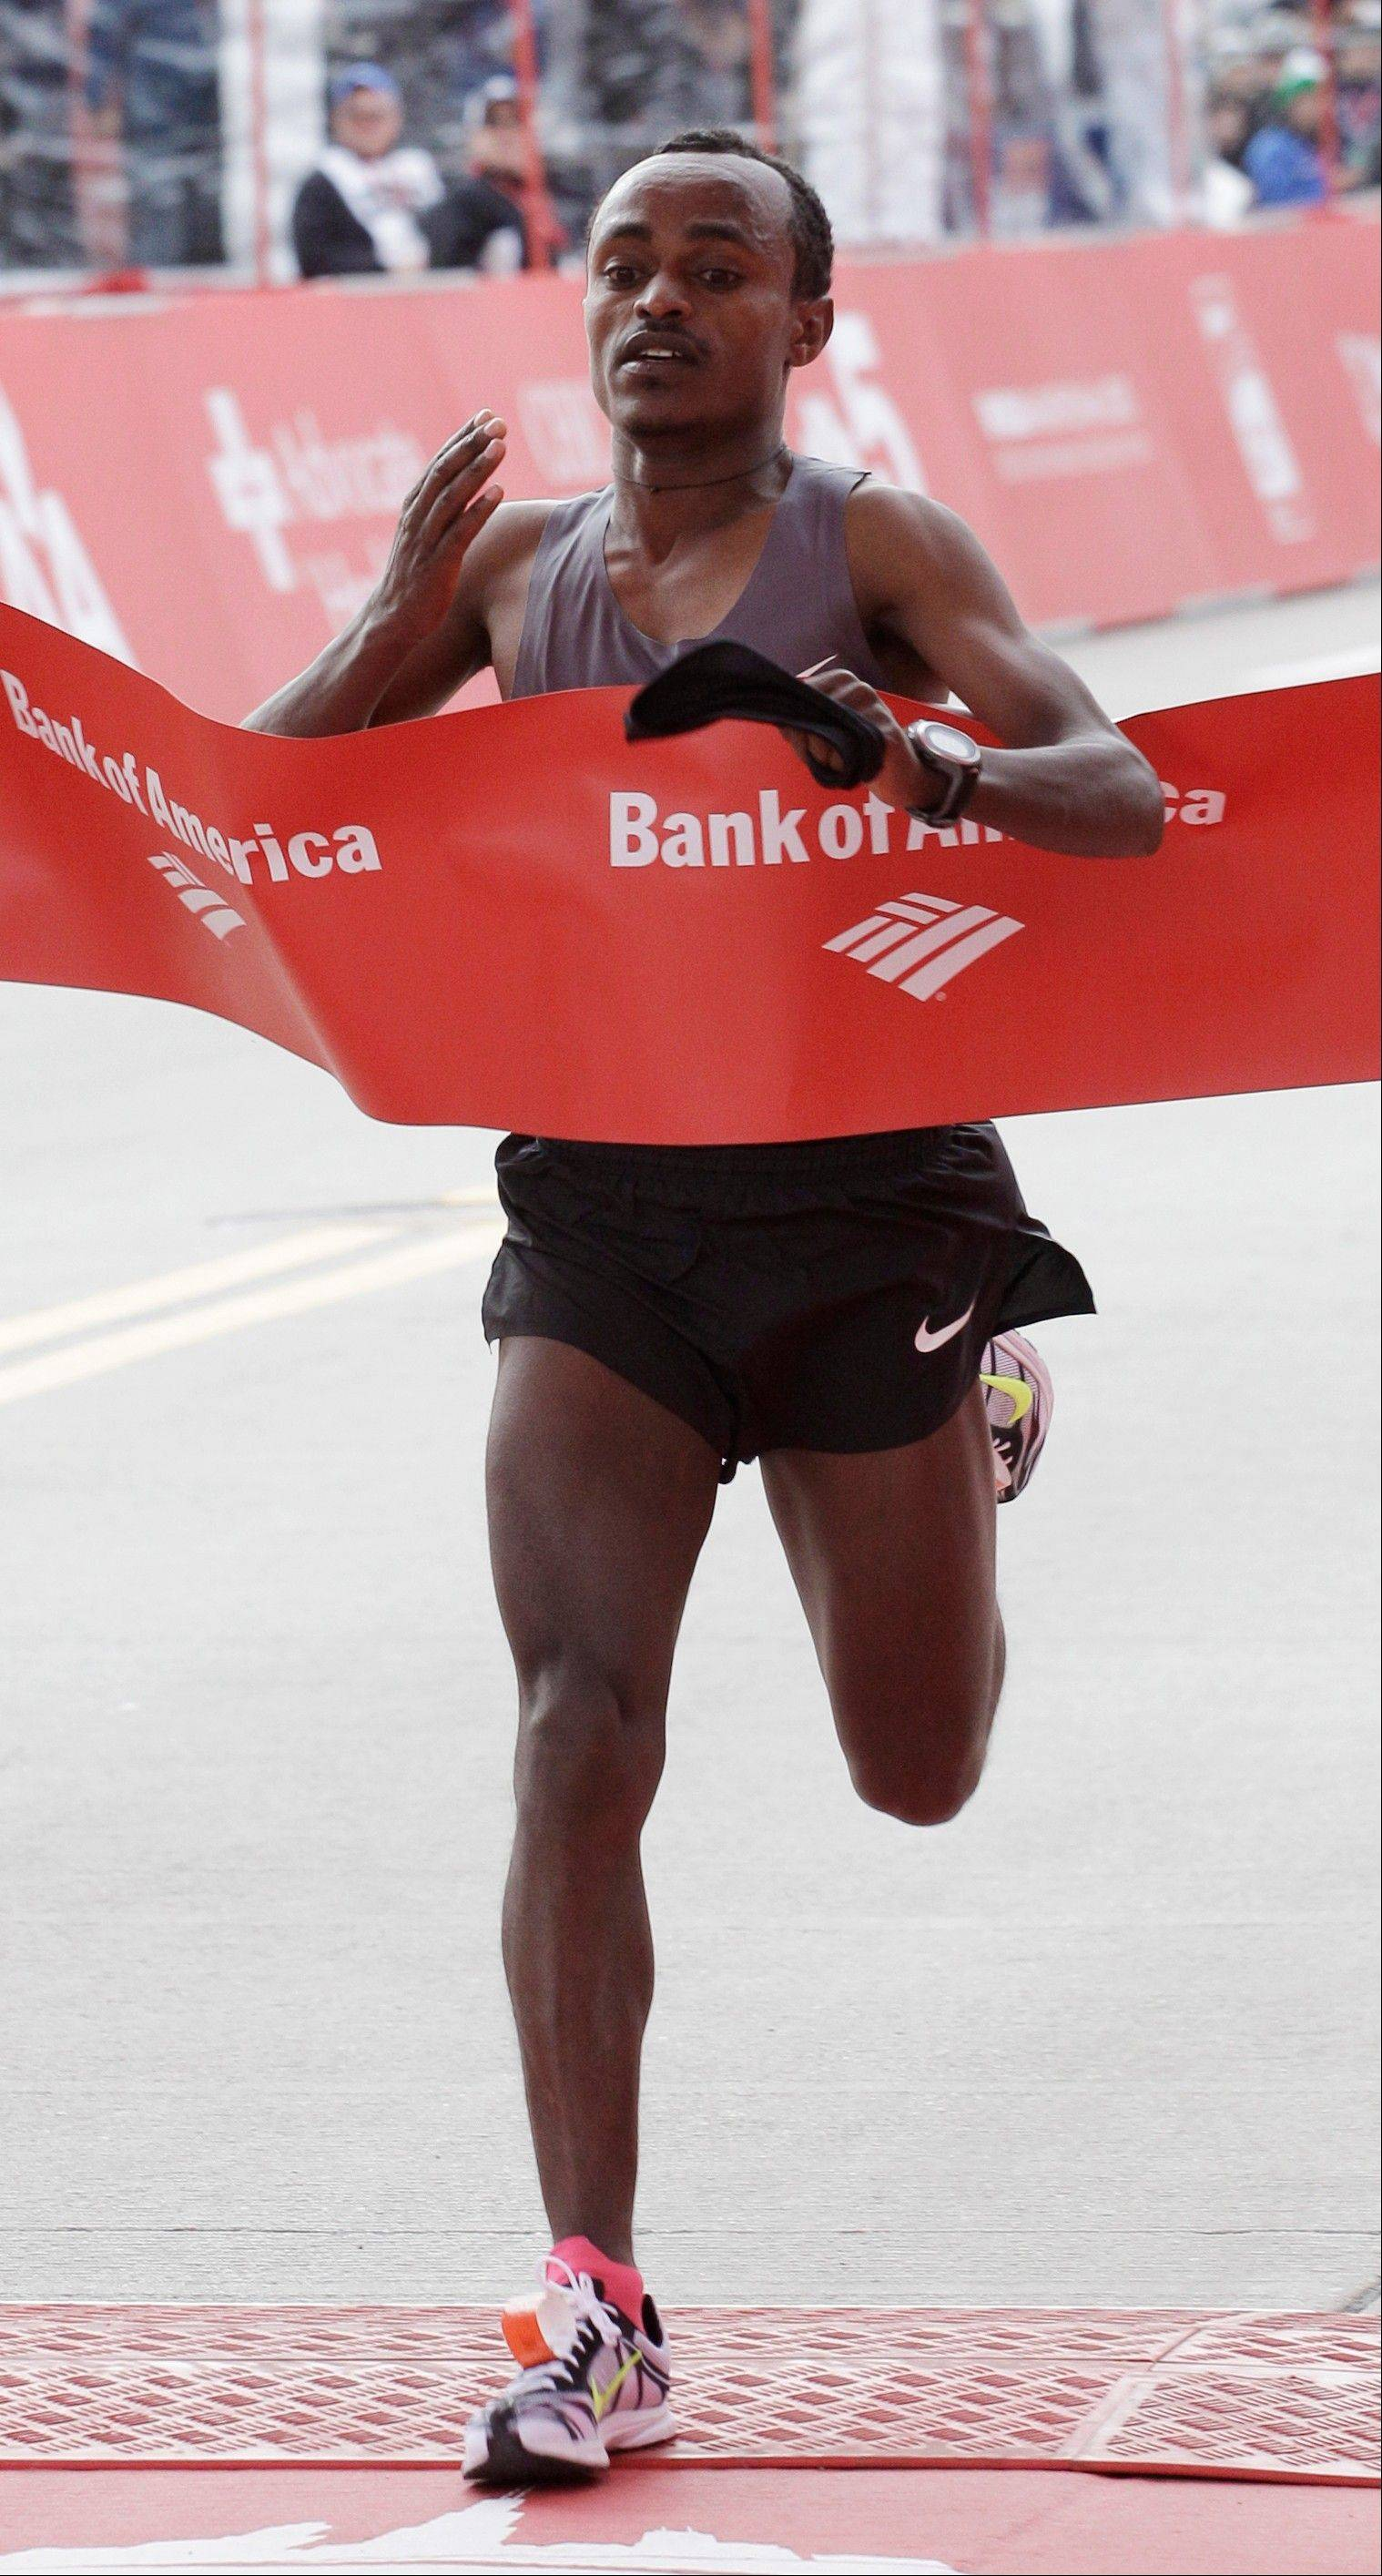 Tsegaye Kebede of Ethiopia, crosses the finish line to win the 2012 Chicago Marathon Sunday, Oct. 7, 2012.